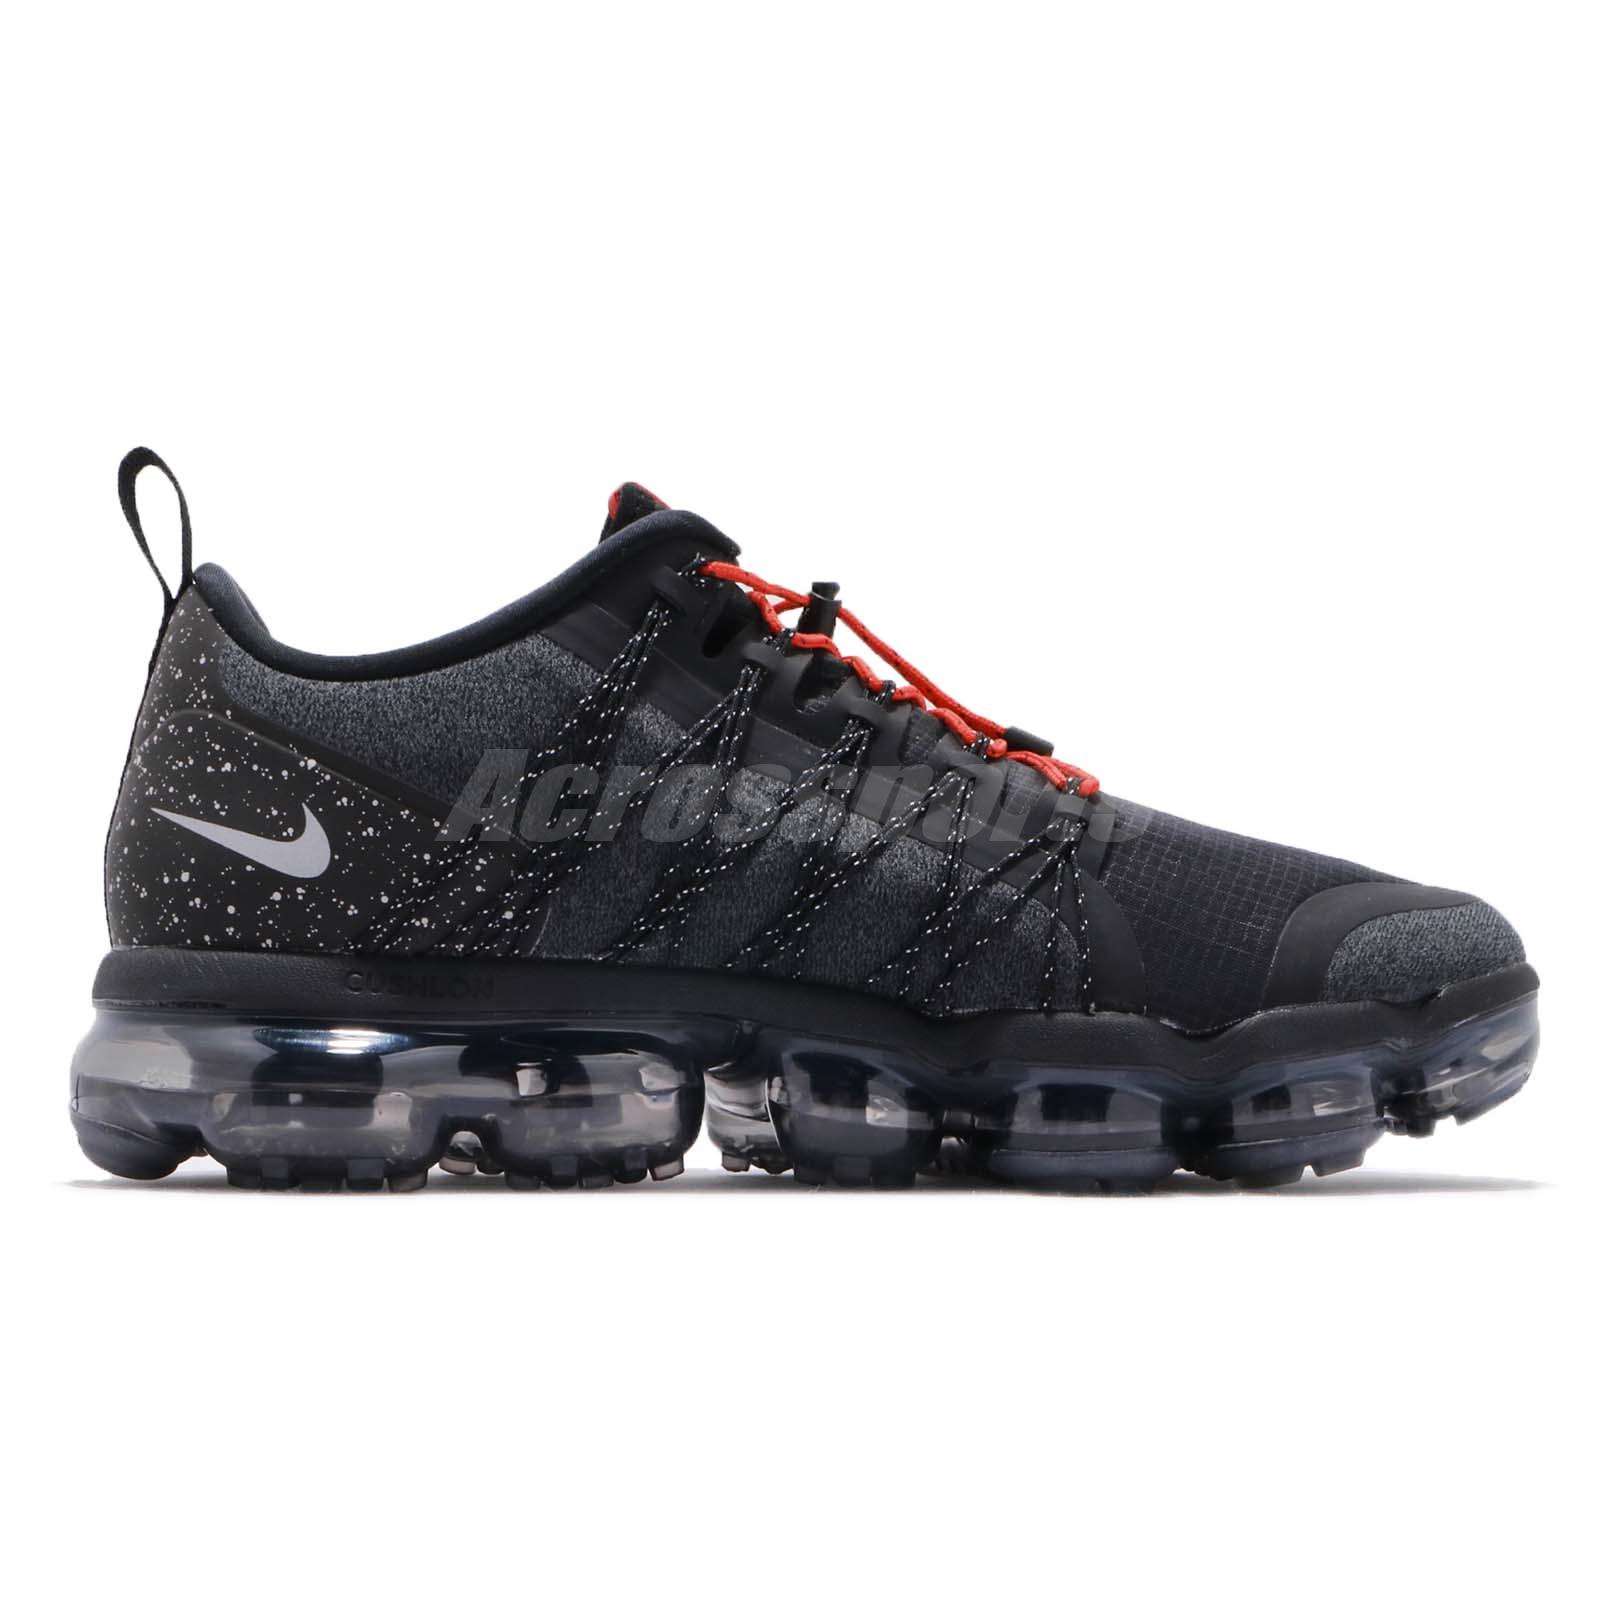 3c925506c98 Nike Air Vapormax Run Utility Black Reflect Silver Mens Running ...